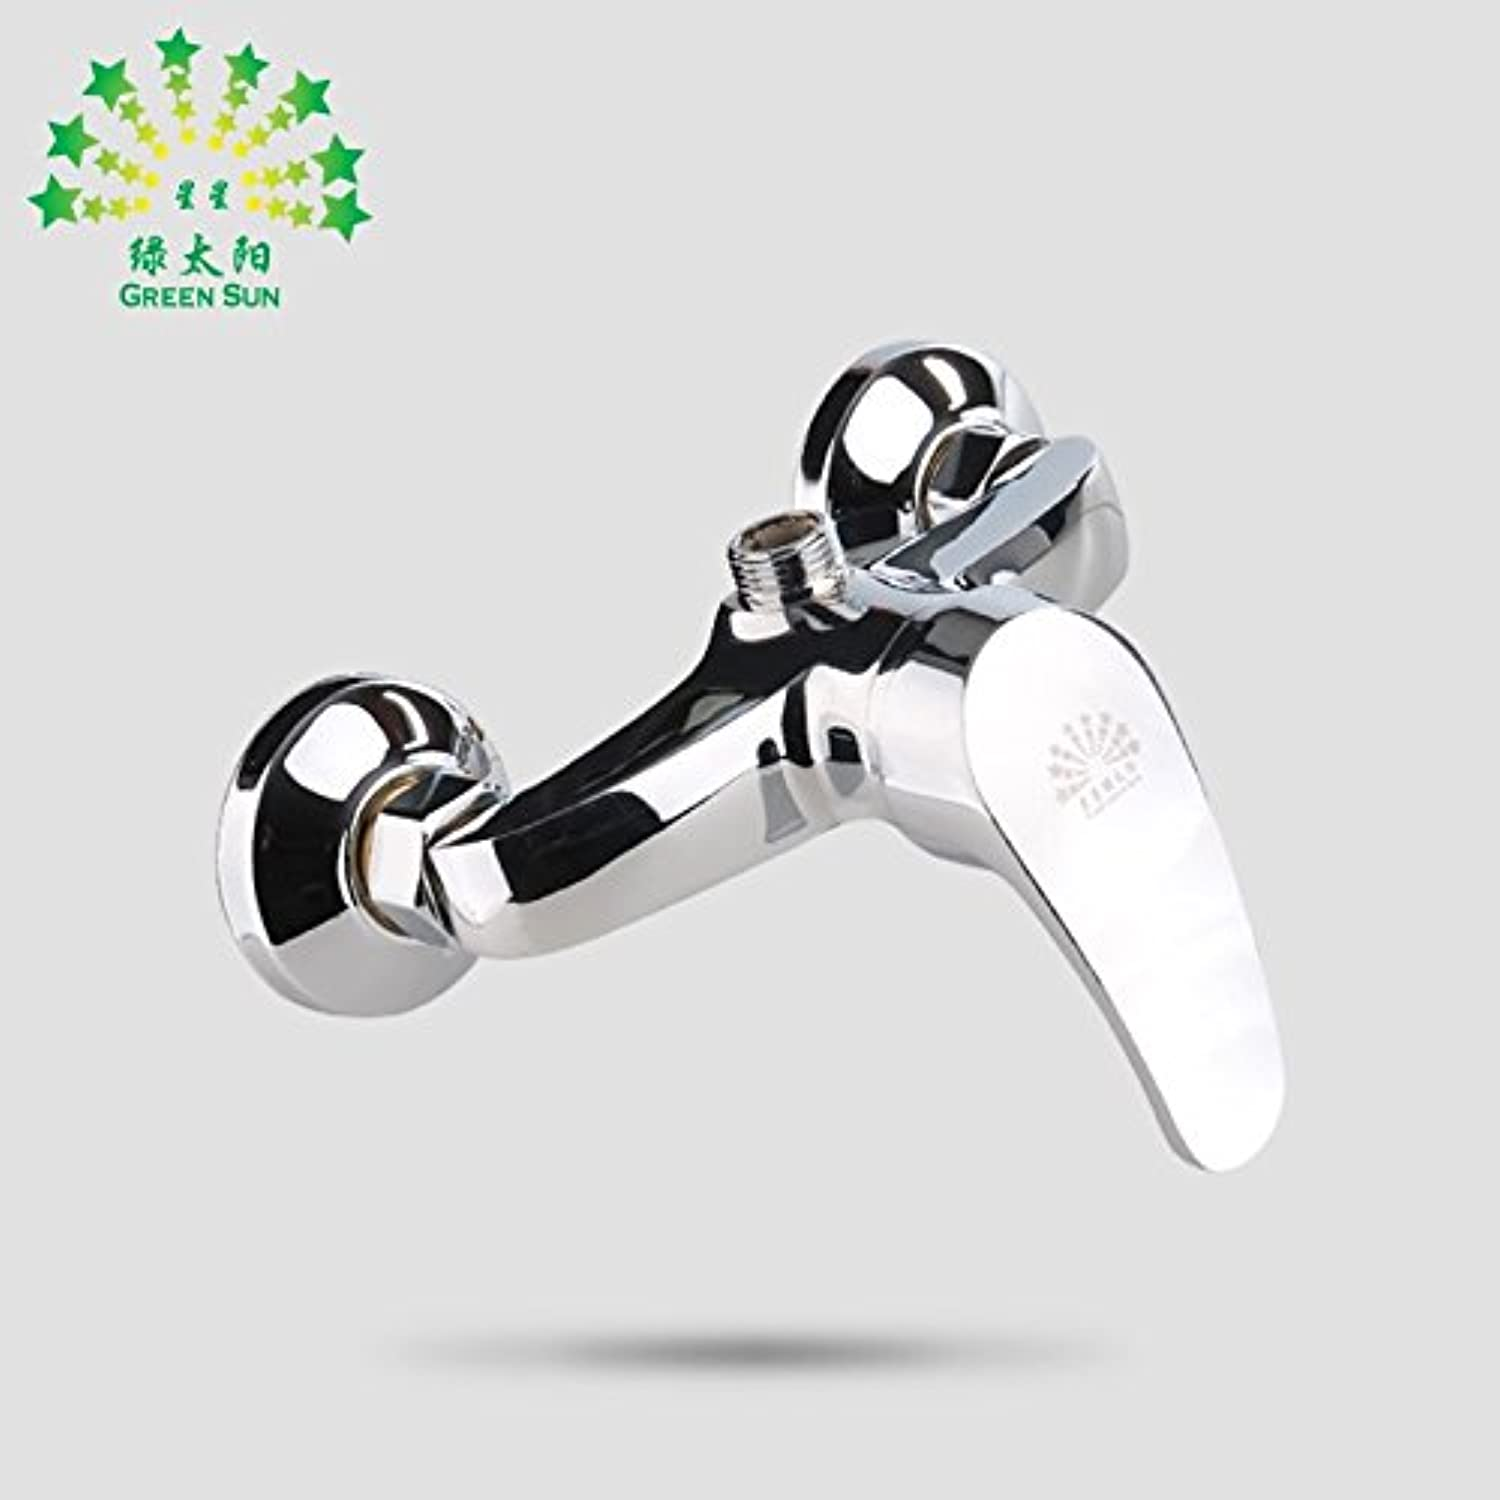 Bijjaladeva Antique Bathroom Sink Vessel Faucet Basin Mixer Tap Bath shower hot and cold warm water faucet single shower full copper plated stainless shower room wall.